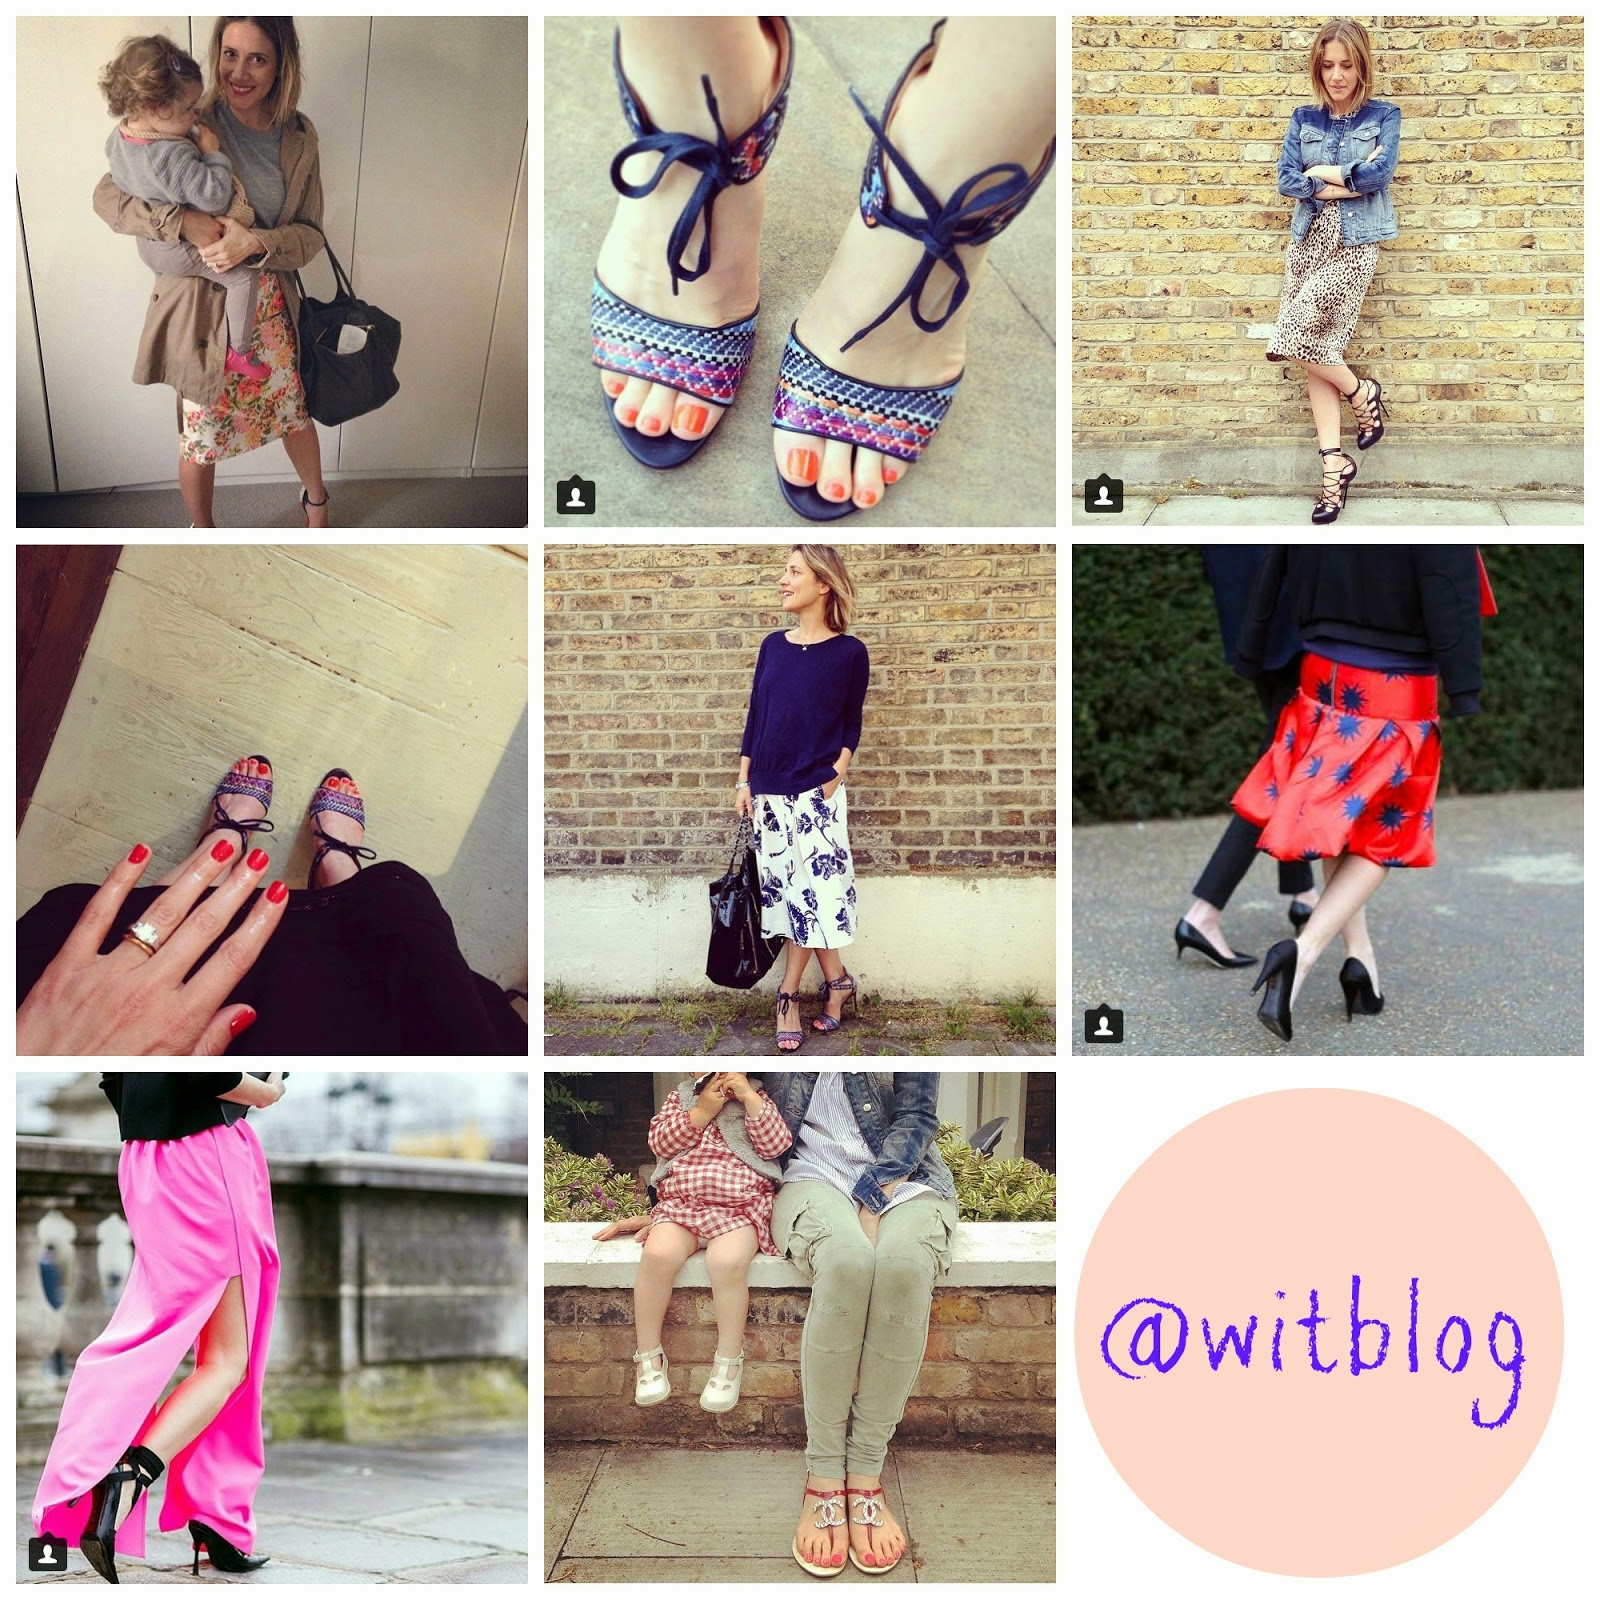 10 of the most STYLISH mums on Instagram! (Part 2) | instagram | stylish mamas | mrs lilien | wearing it today | lair frantic | but why mummy why | sarah joan ross | emirates woman elle | red imagine | erica davies | Lokk magazine | modern mum must have | mm blog | mamas | fashion | stylish| fashion editors | wit blog | satyle | mums fashion | instgram feed | mamas VIb | blog | mummy bloggers | magazine | journalists | stylish mums | mamasvib